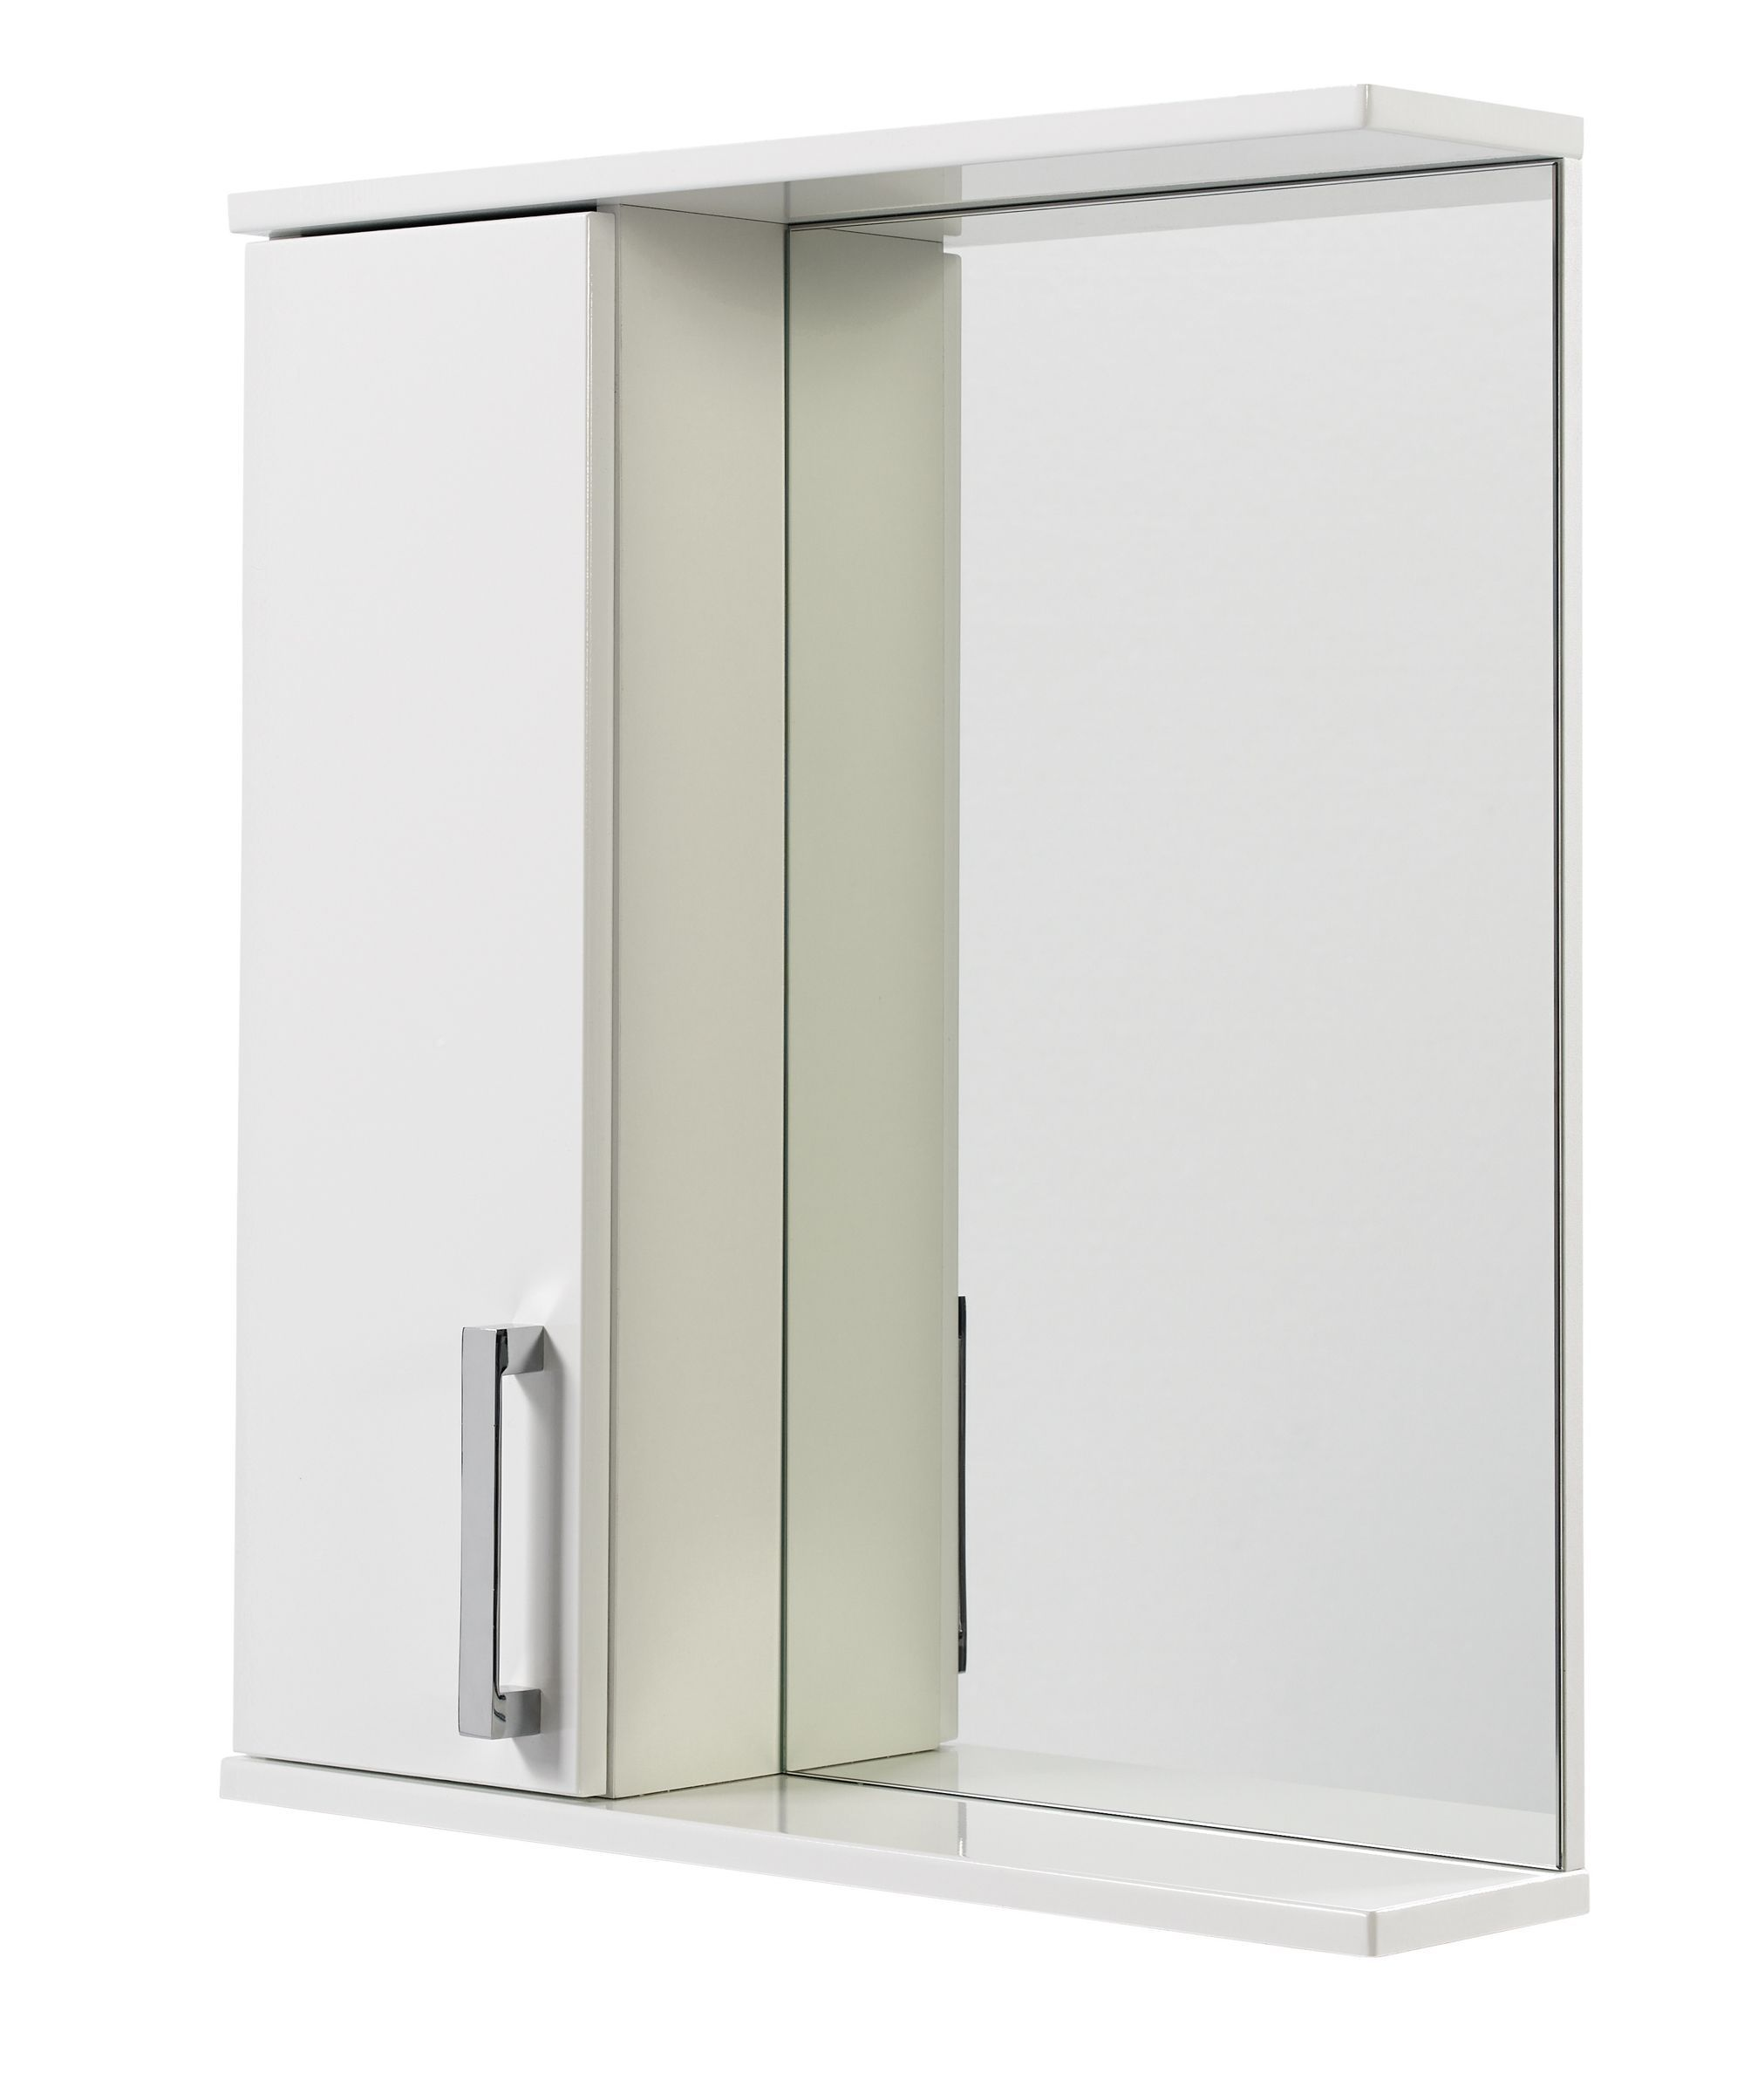 ardenno single door white gloss mirror cabinet. Black Bedroom Furniture Sets. Home Design Ideas